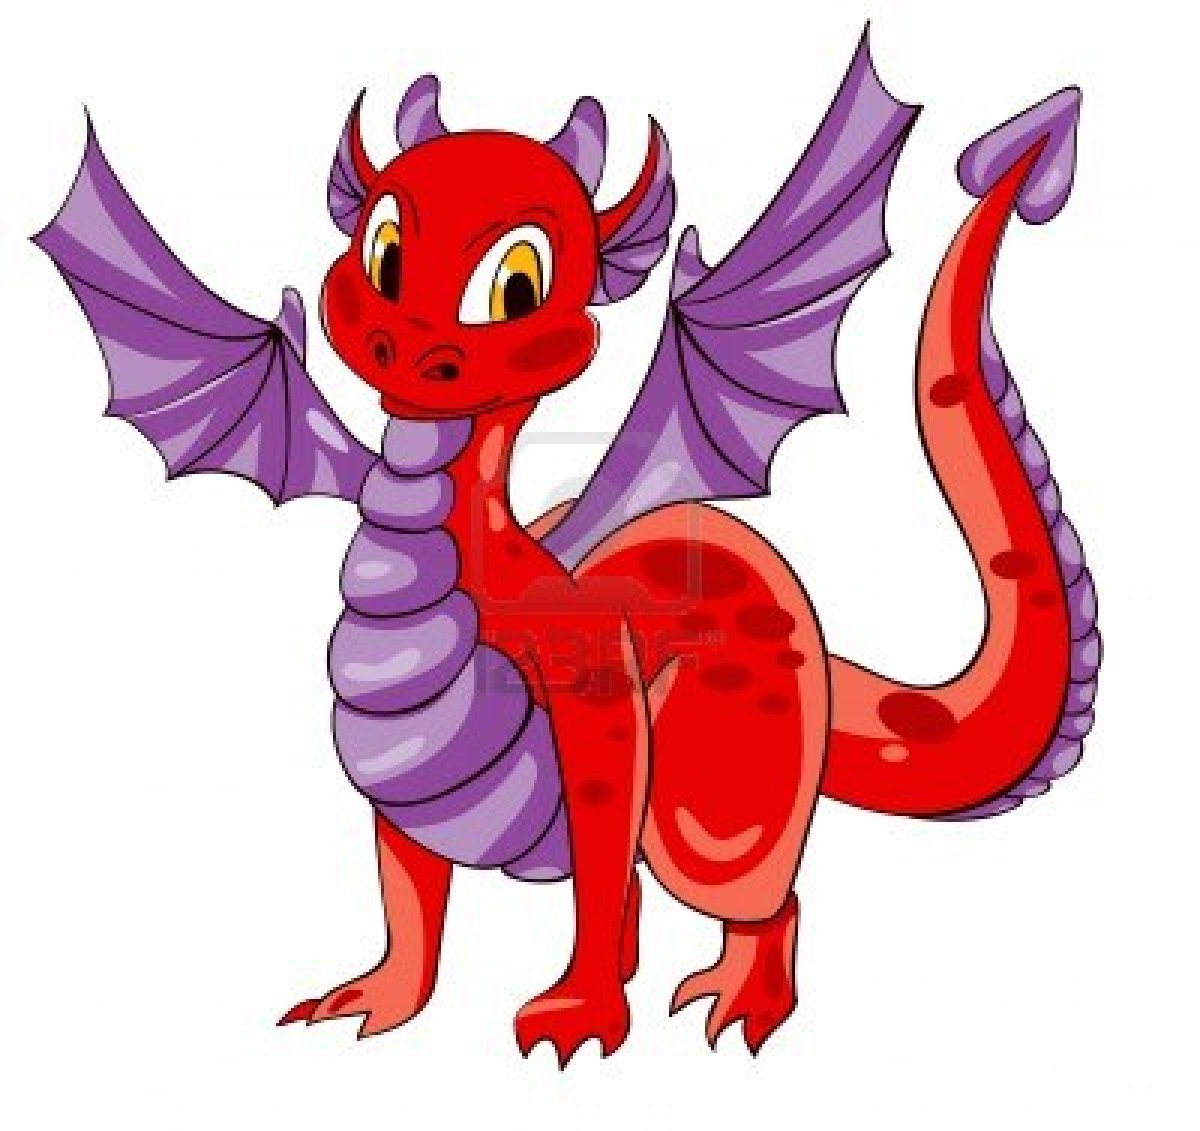 11675179-red-dragon-with-purple-wings-vector-illustration